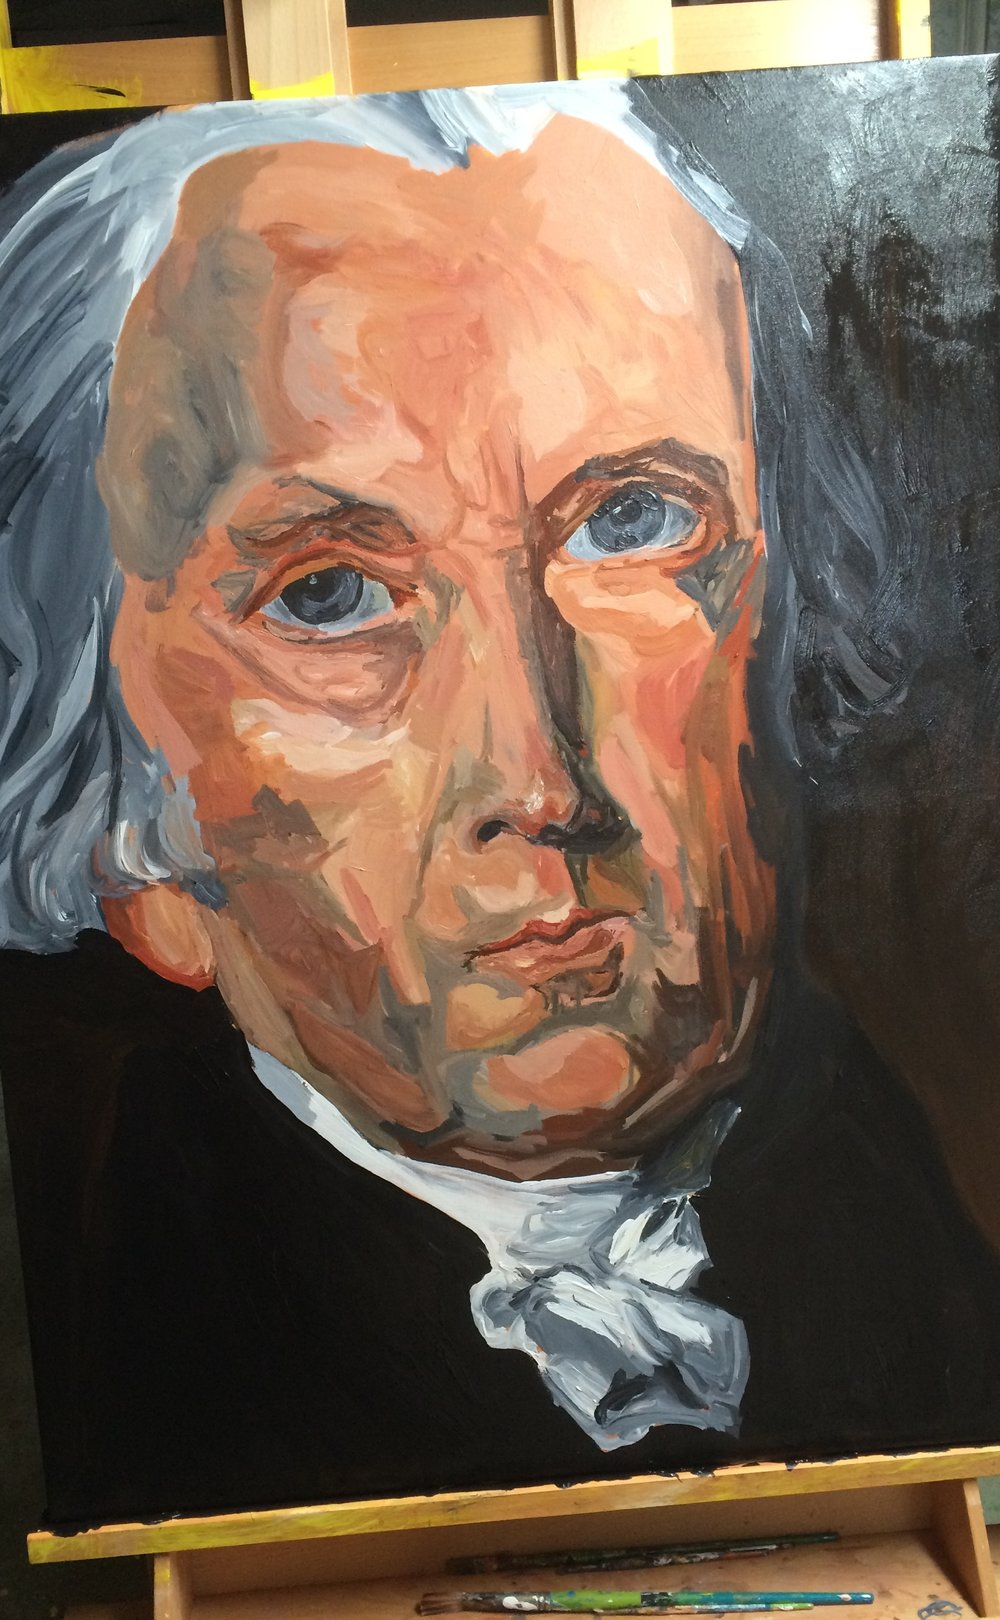 on the easel and before I signed it, James Madison was painted between March 15 to April 1, 2017